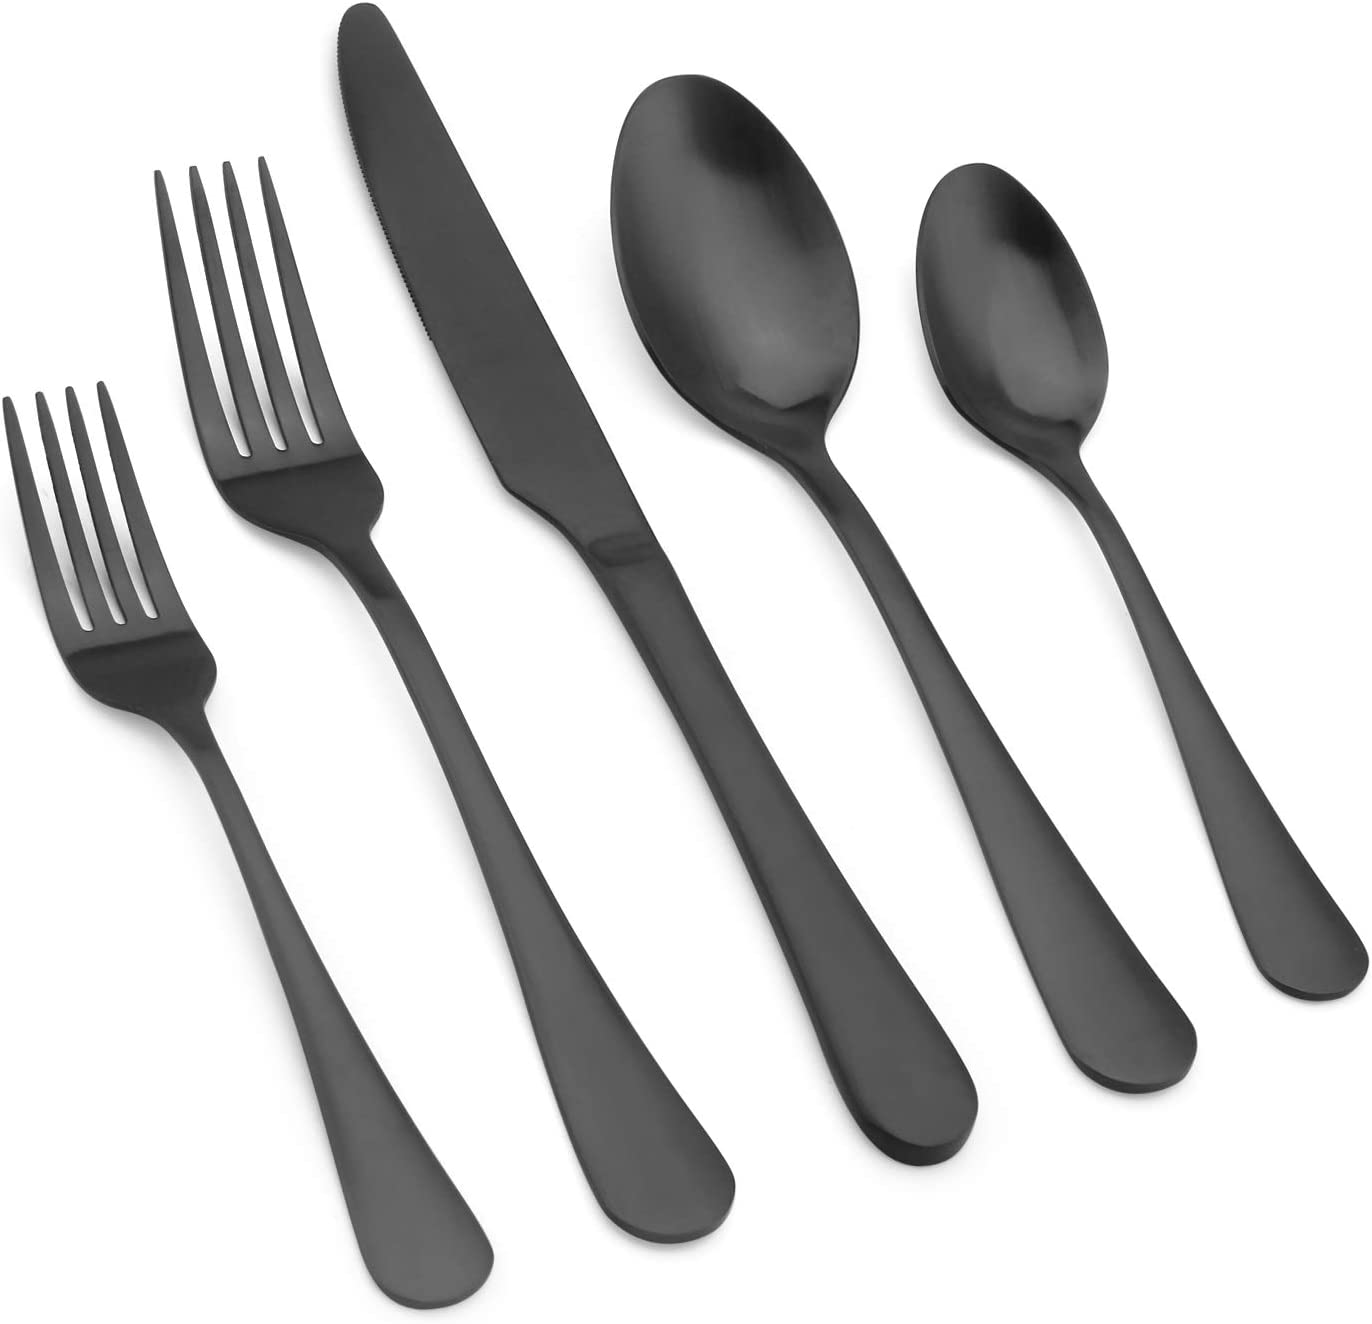 Vanys Matte Black Silverware Set, 20-Piece Stainless Steel kitchen Utensil Flatware Set Service for 4, Satin Finish Cutlery Set for Home Restaurant Wedding Party, Dishwasher Safe